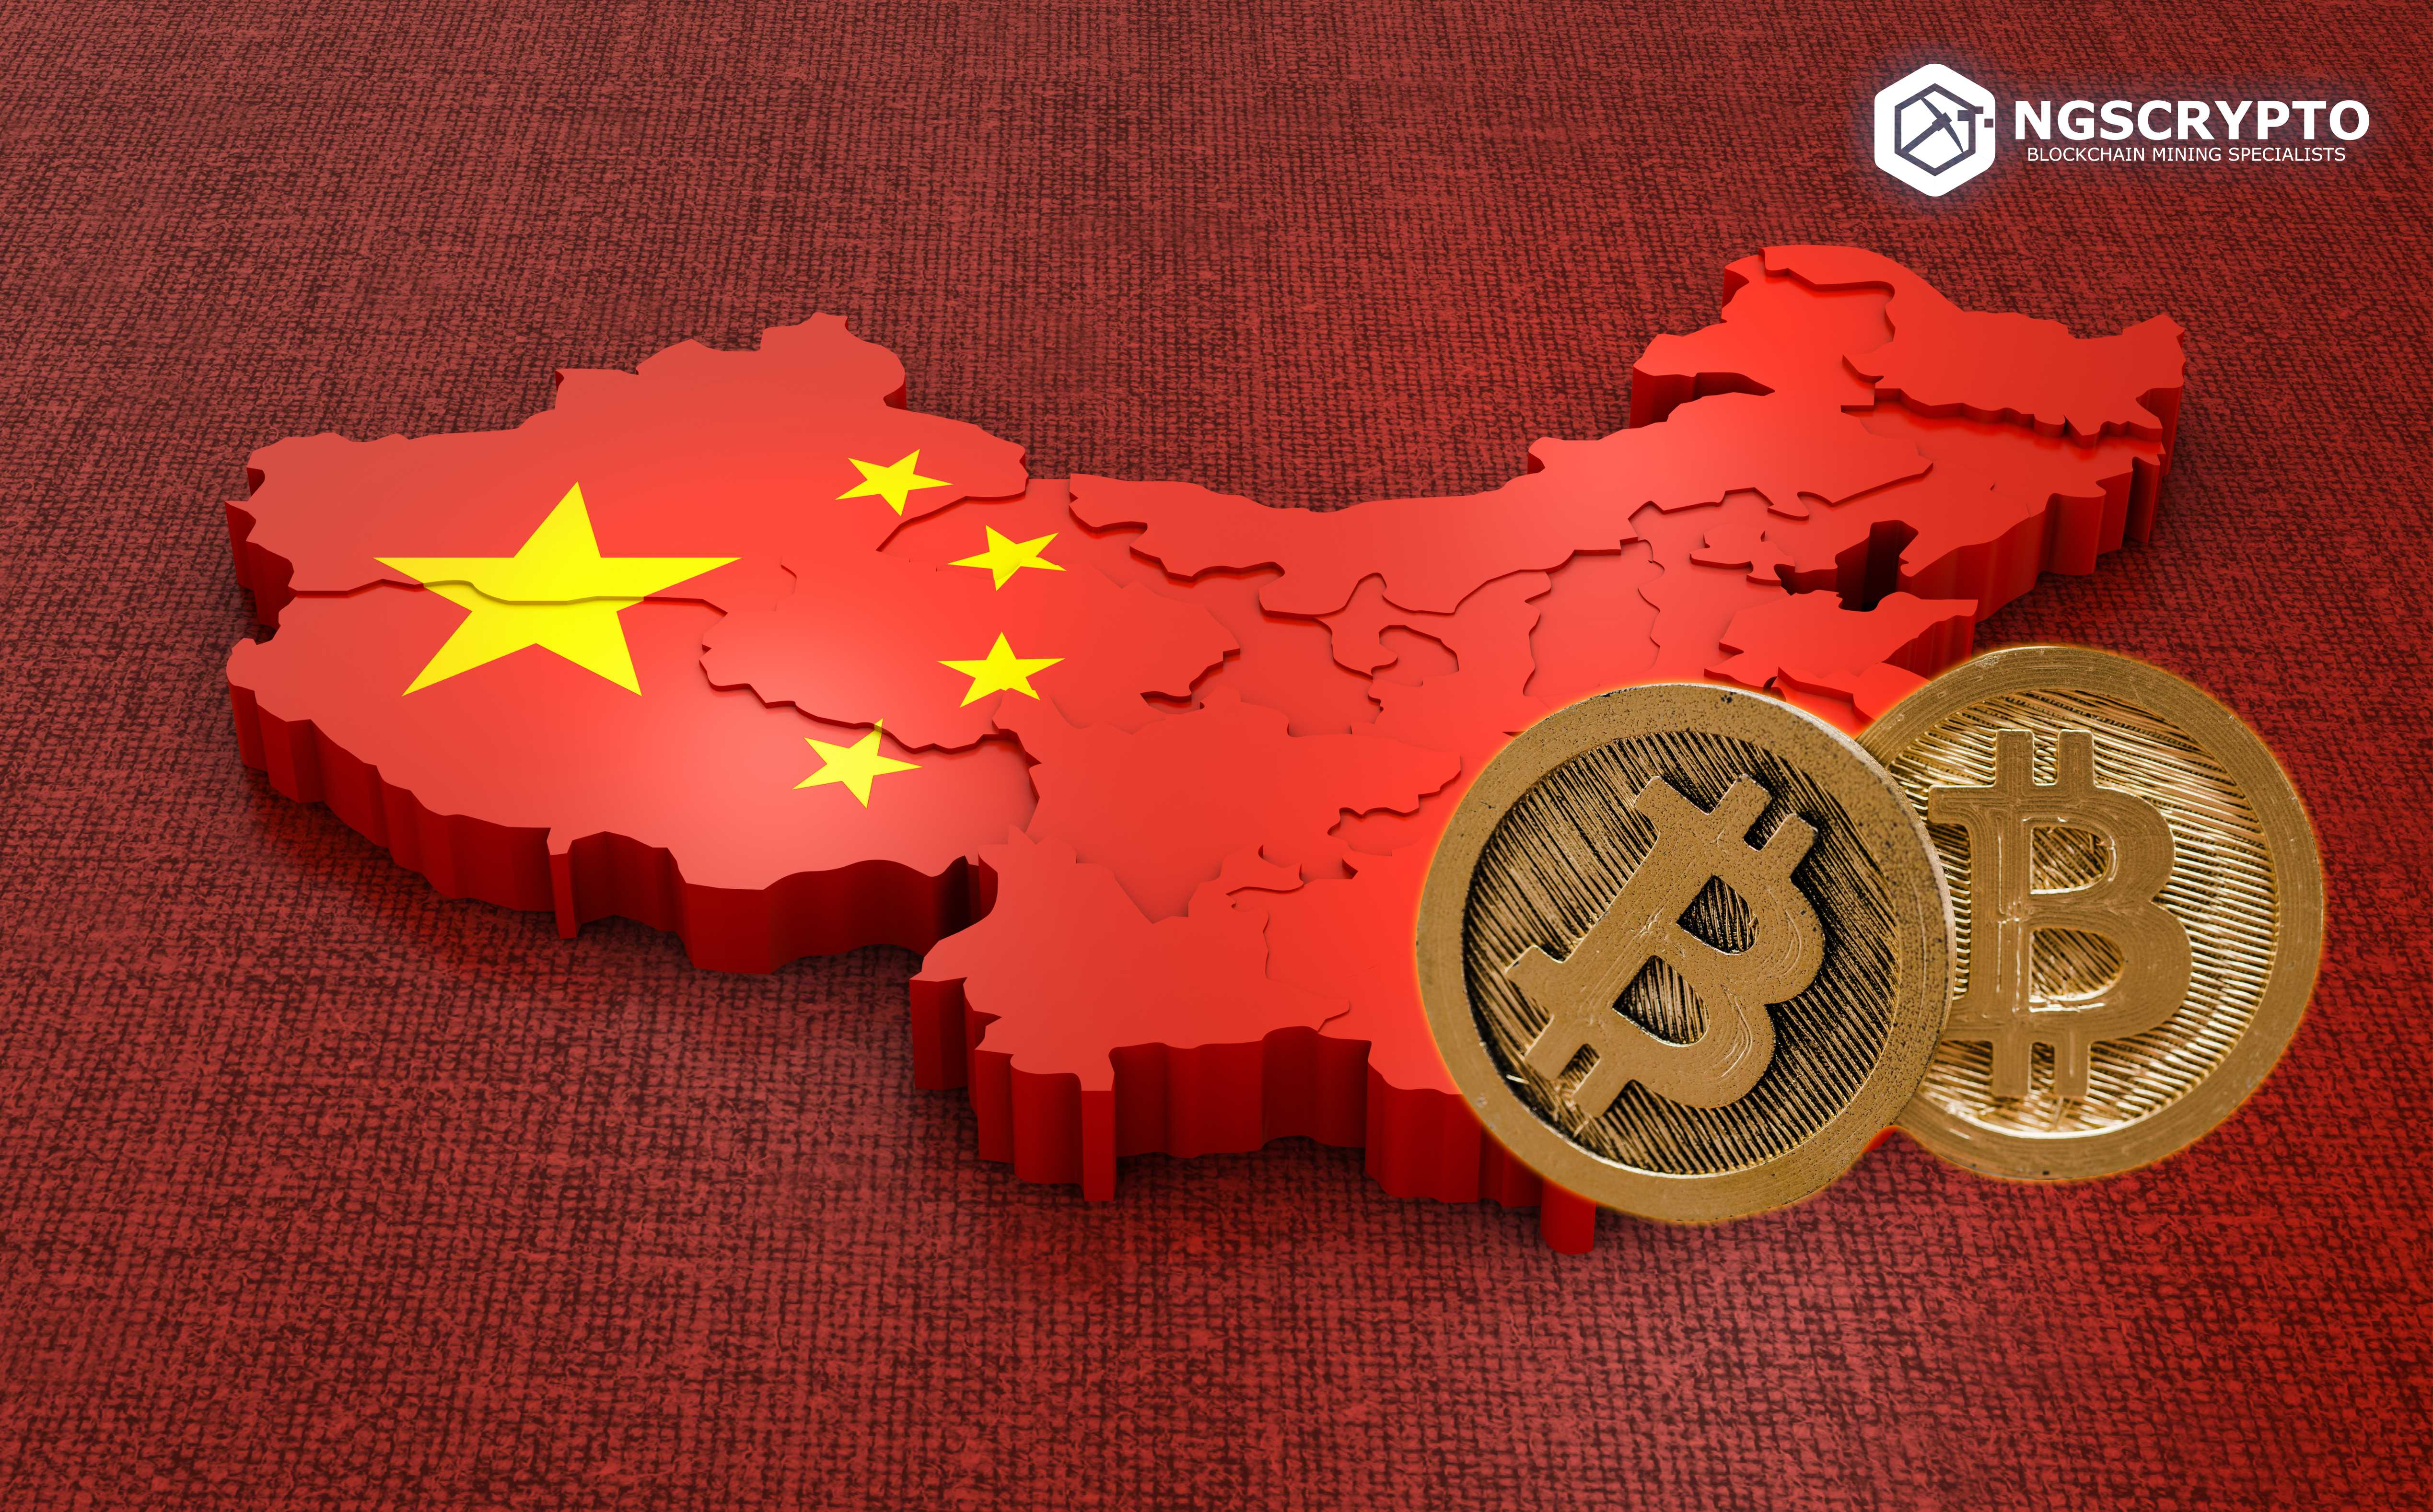 CHINA SET TO RELEASE THEIR OWN DIGITAL CURRENCY